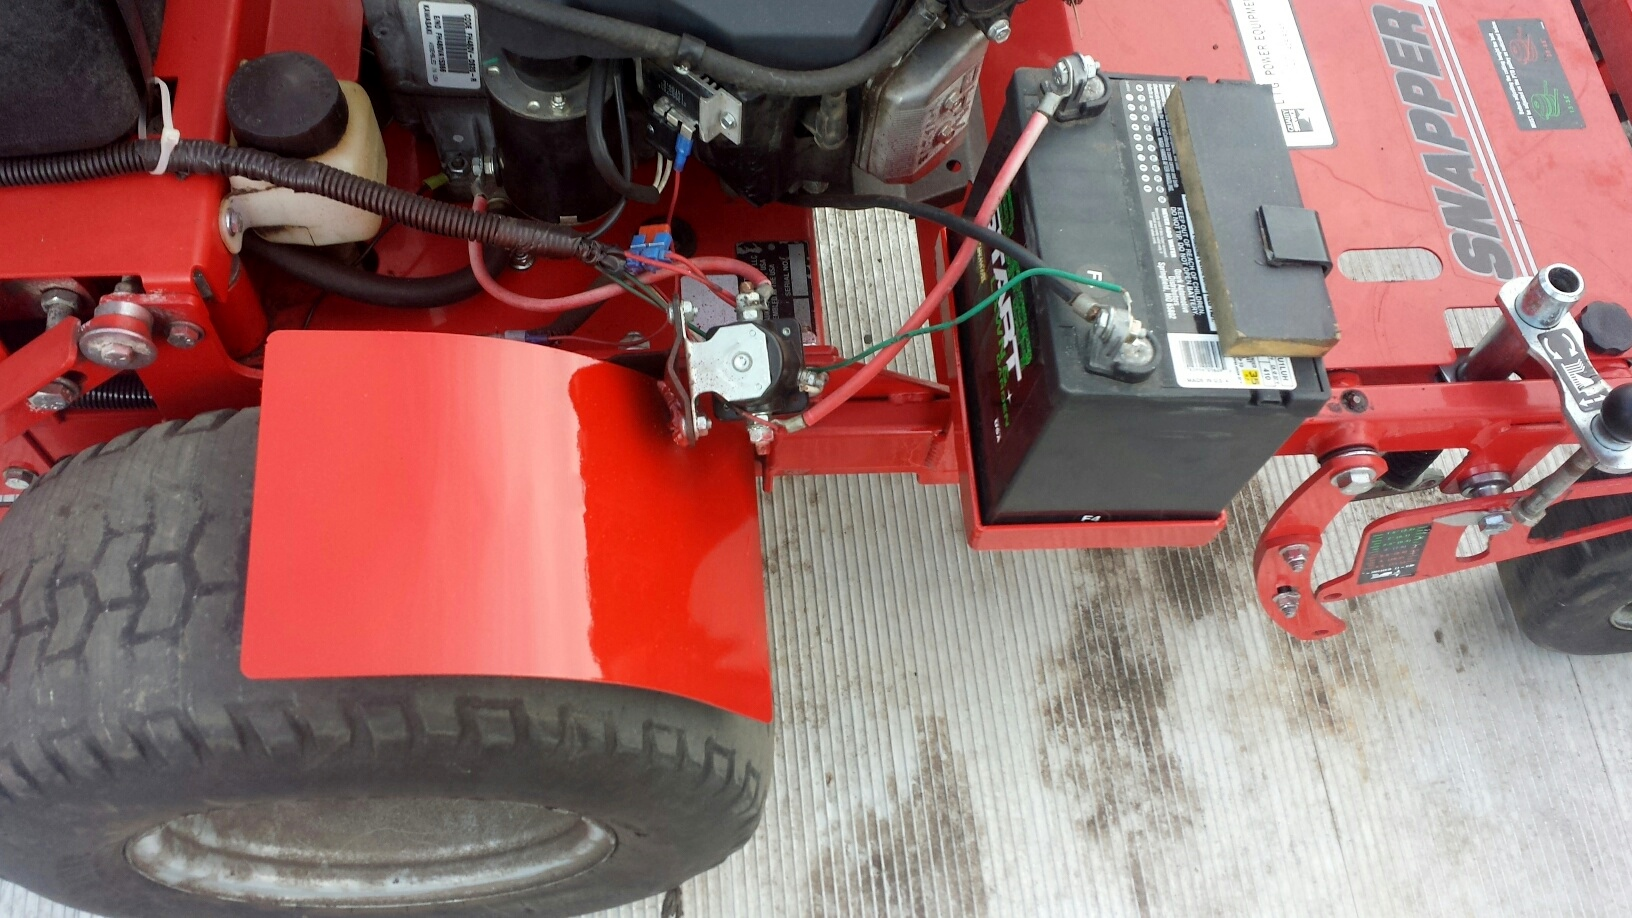 mower-fender-and-battery-tray-1.jpg